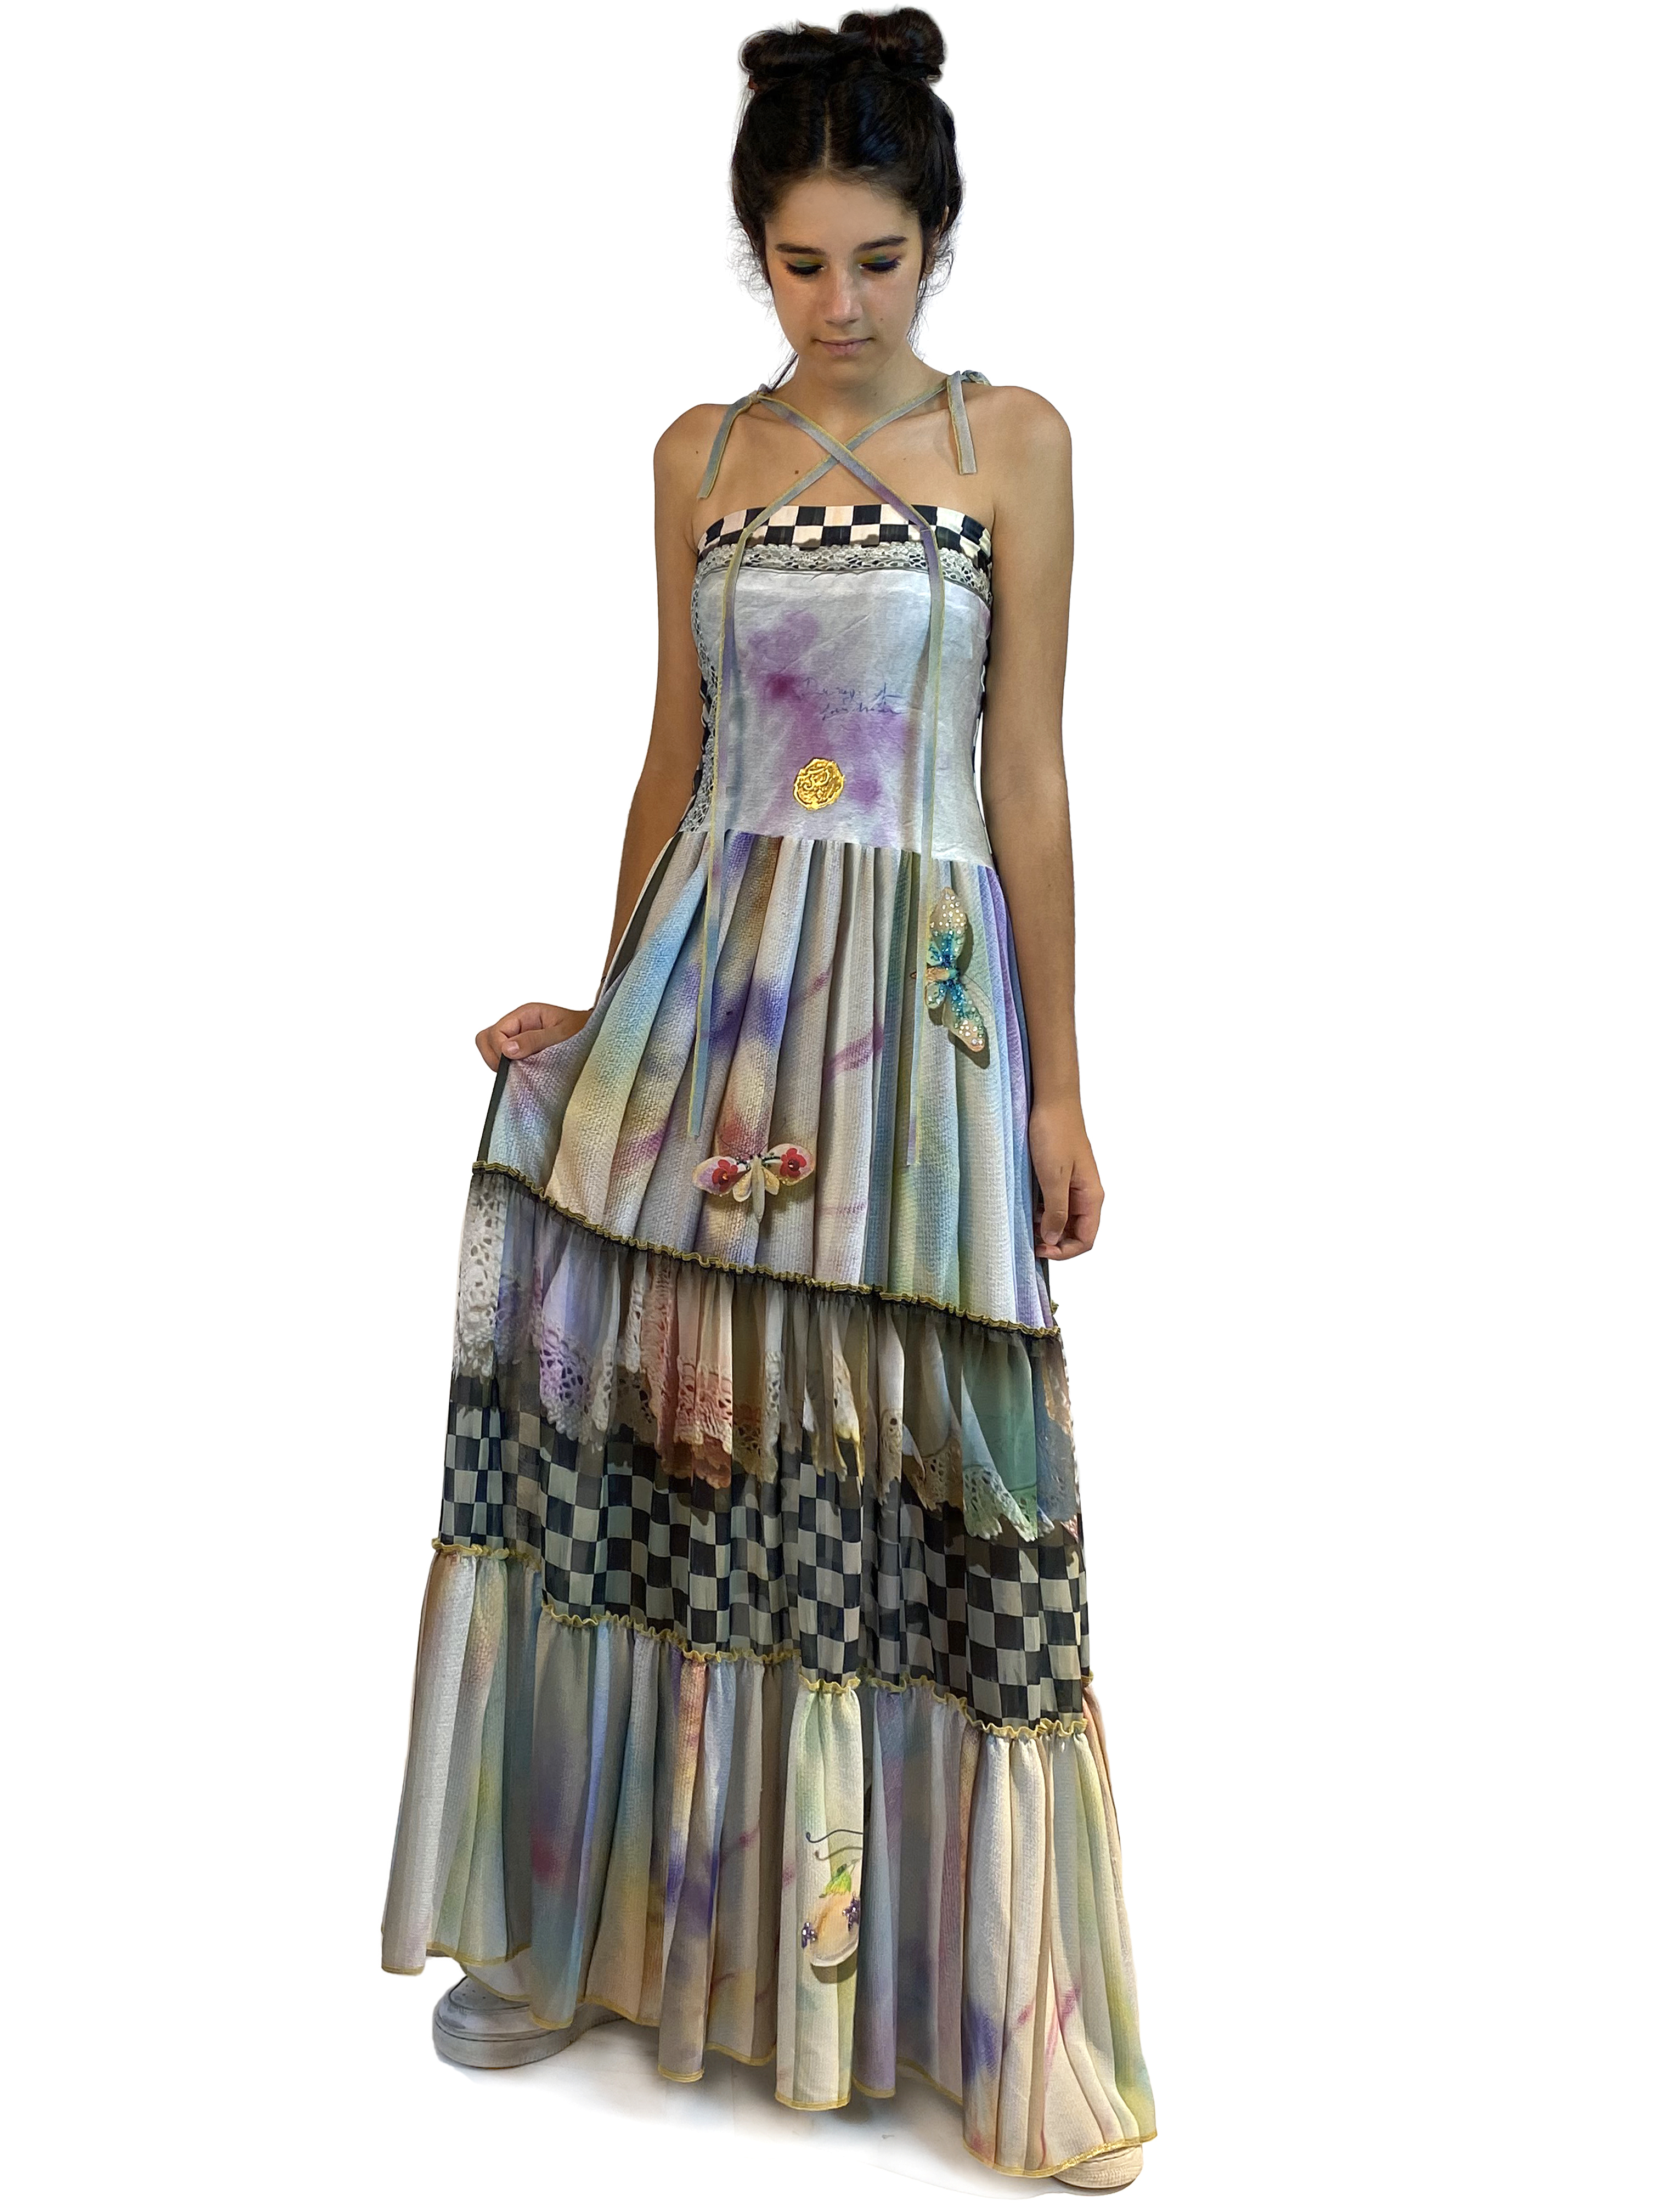 IPNG: Never Enough Color Orchid Illusion Convertible Dress To Skirt